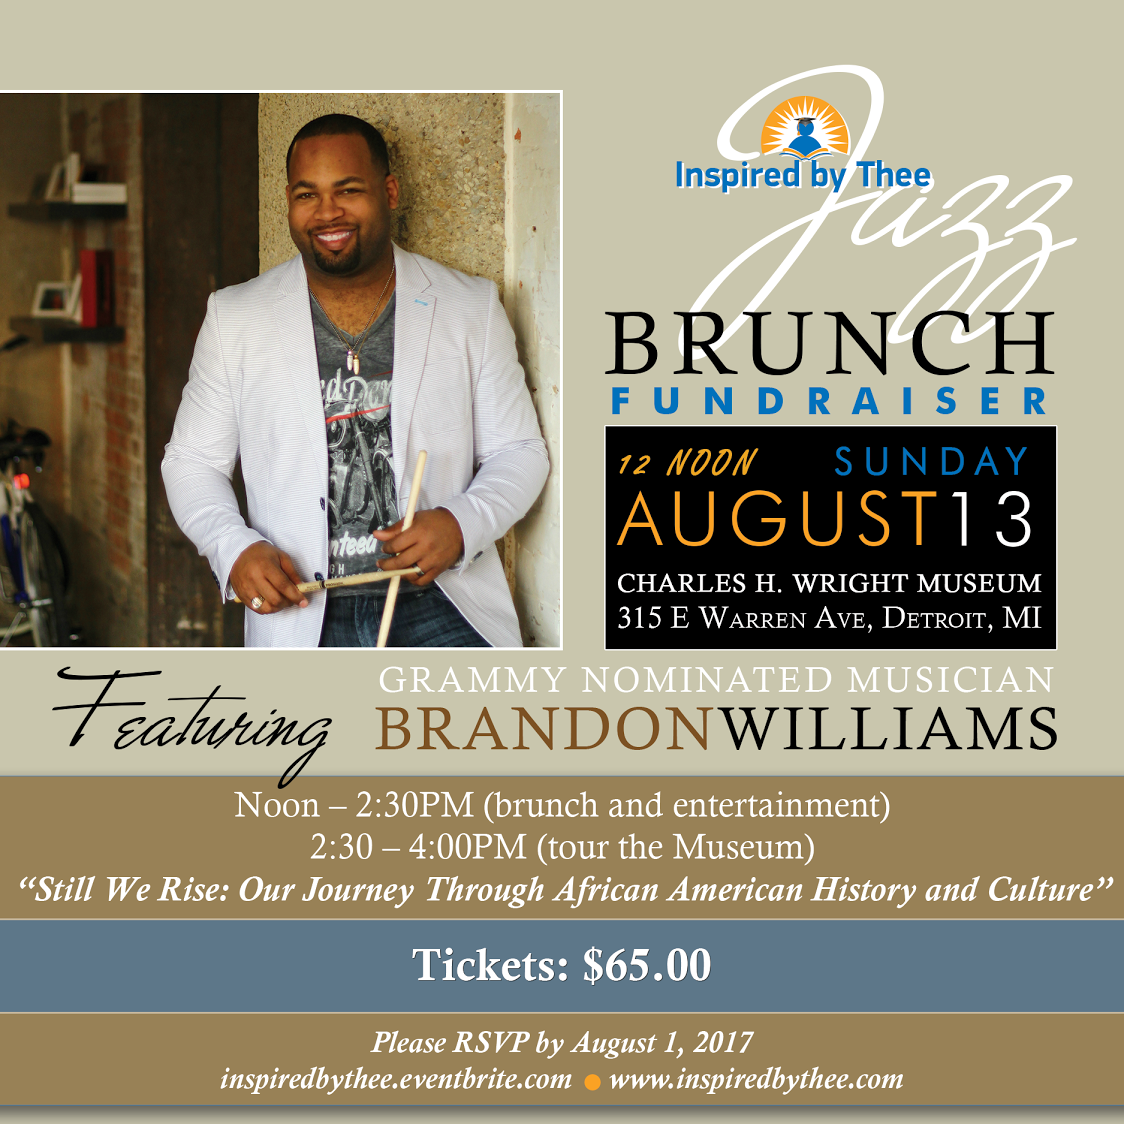 Jazz Brunch with Brandon Williams. Jazz Brunch with Brandon Williams